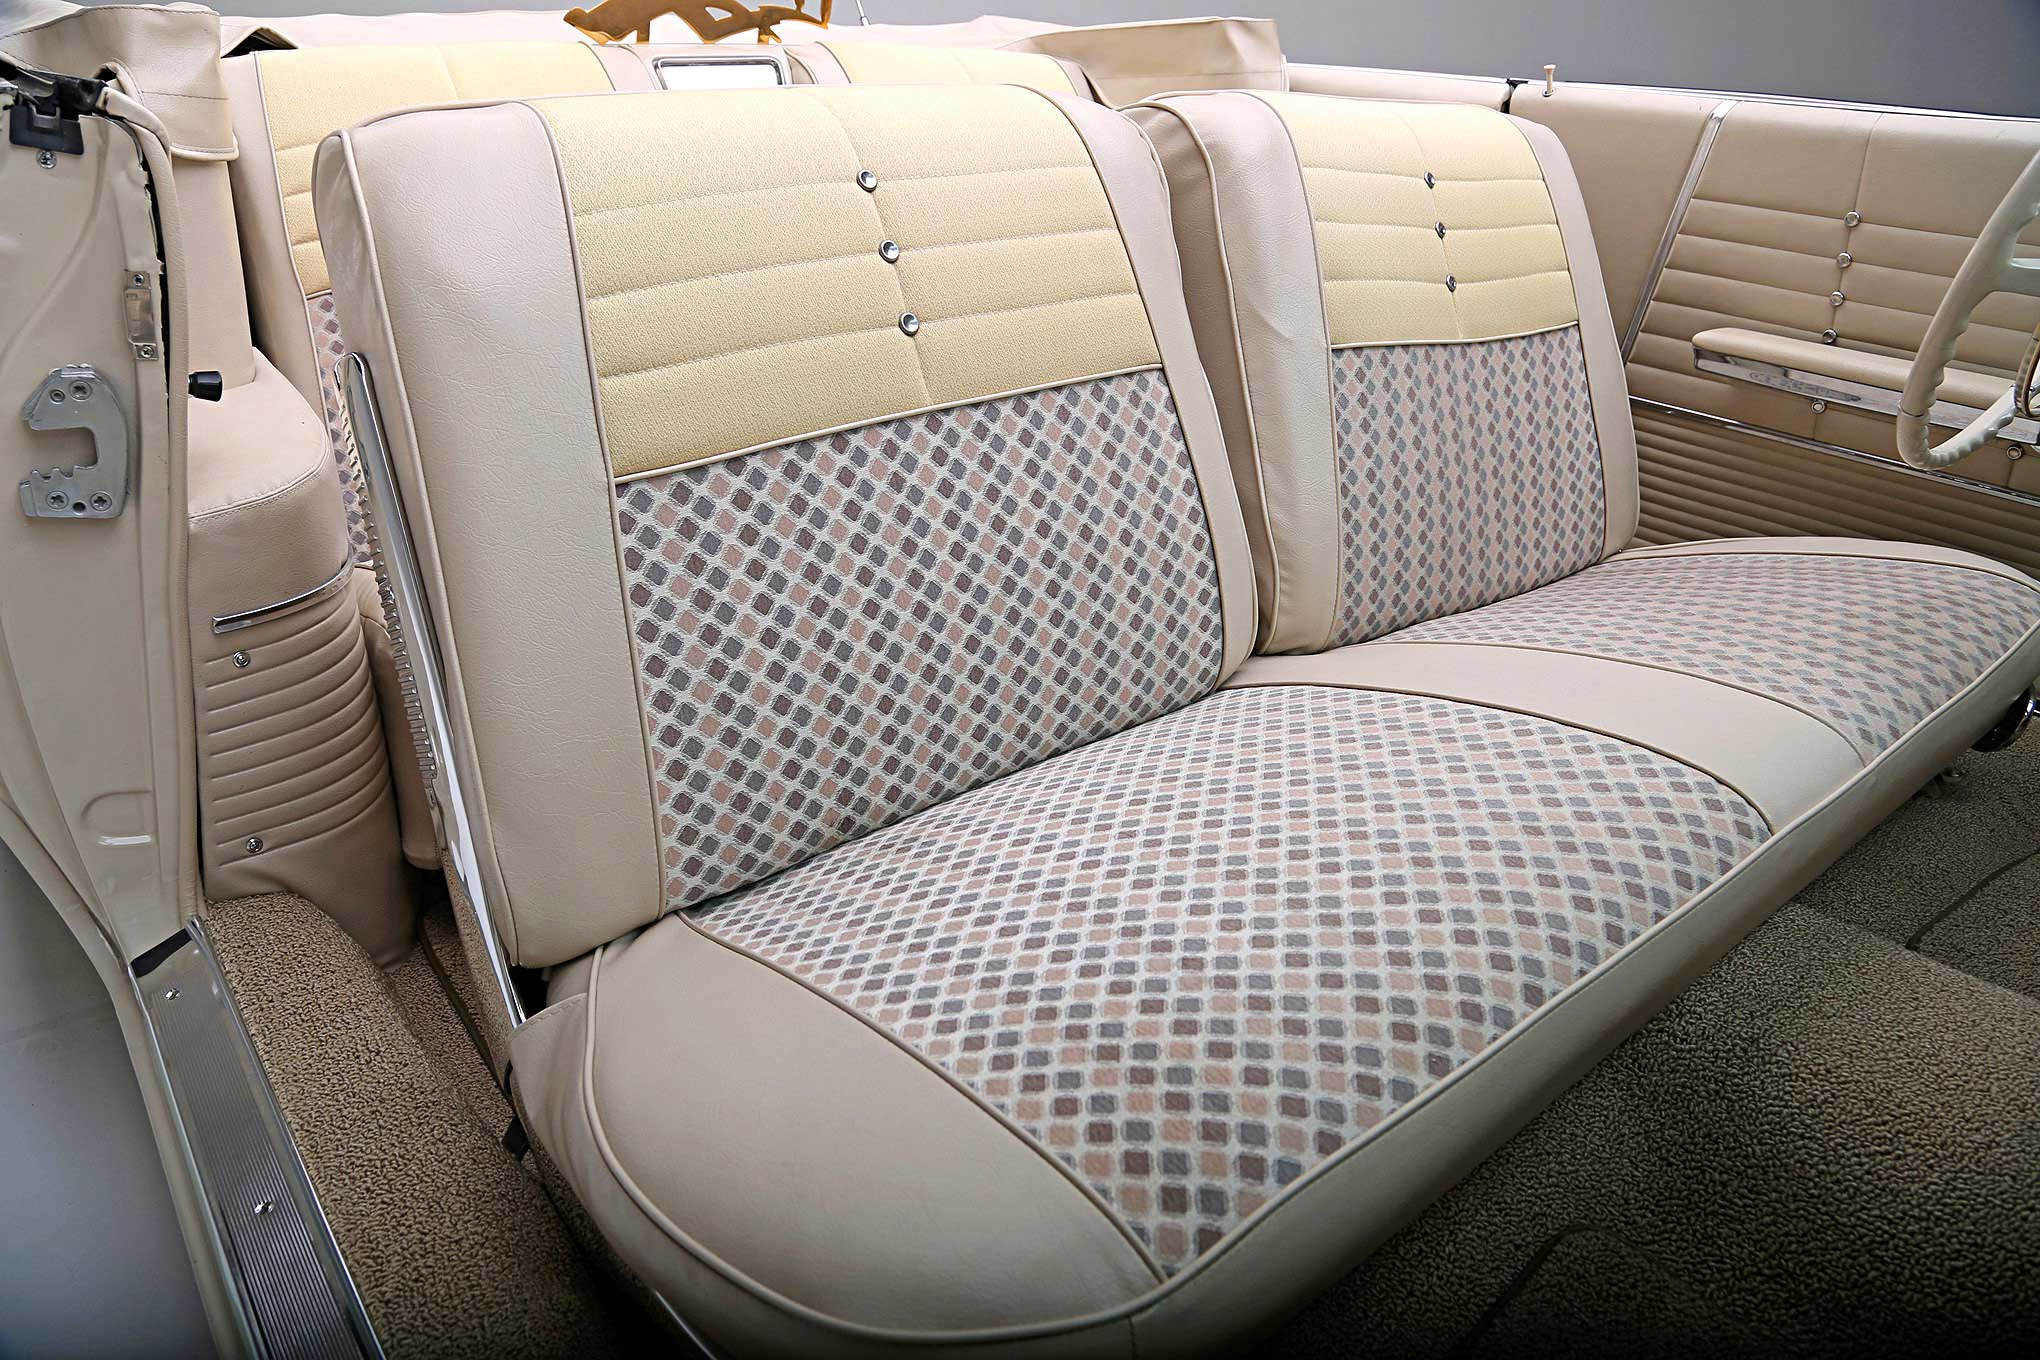 1964 Chevy Impala Seat Covers Velcromag